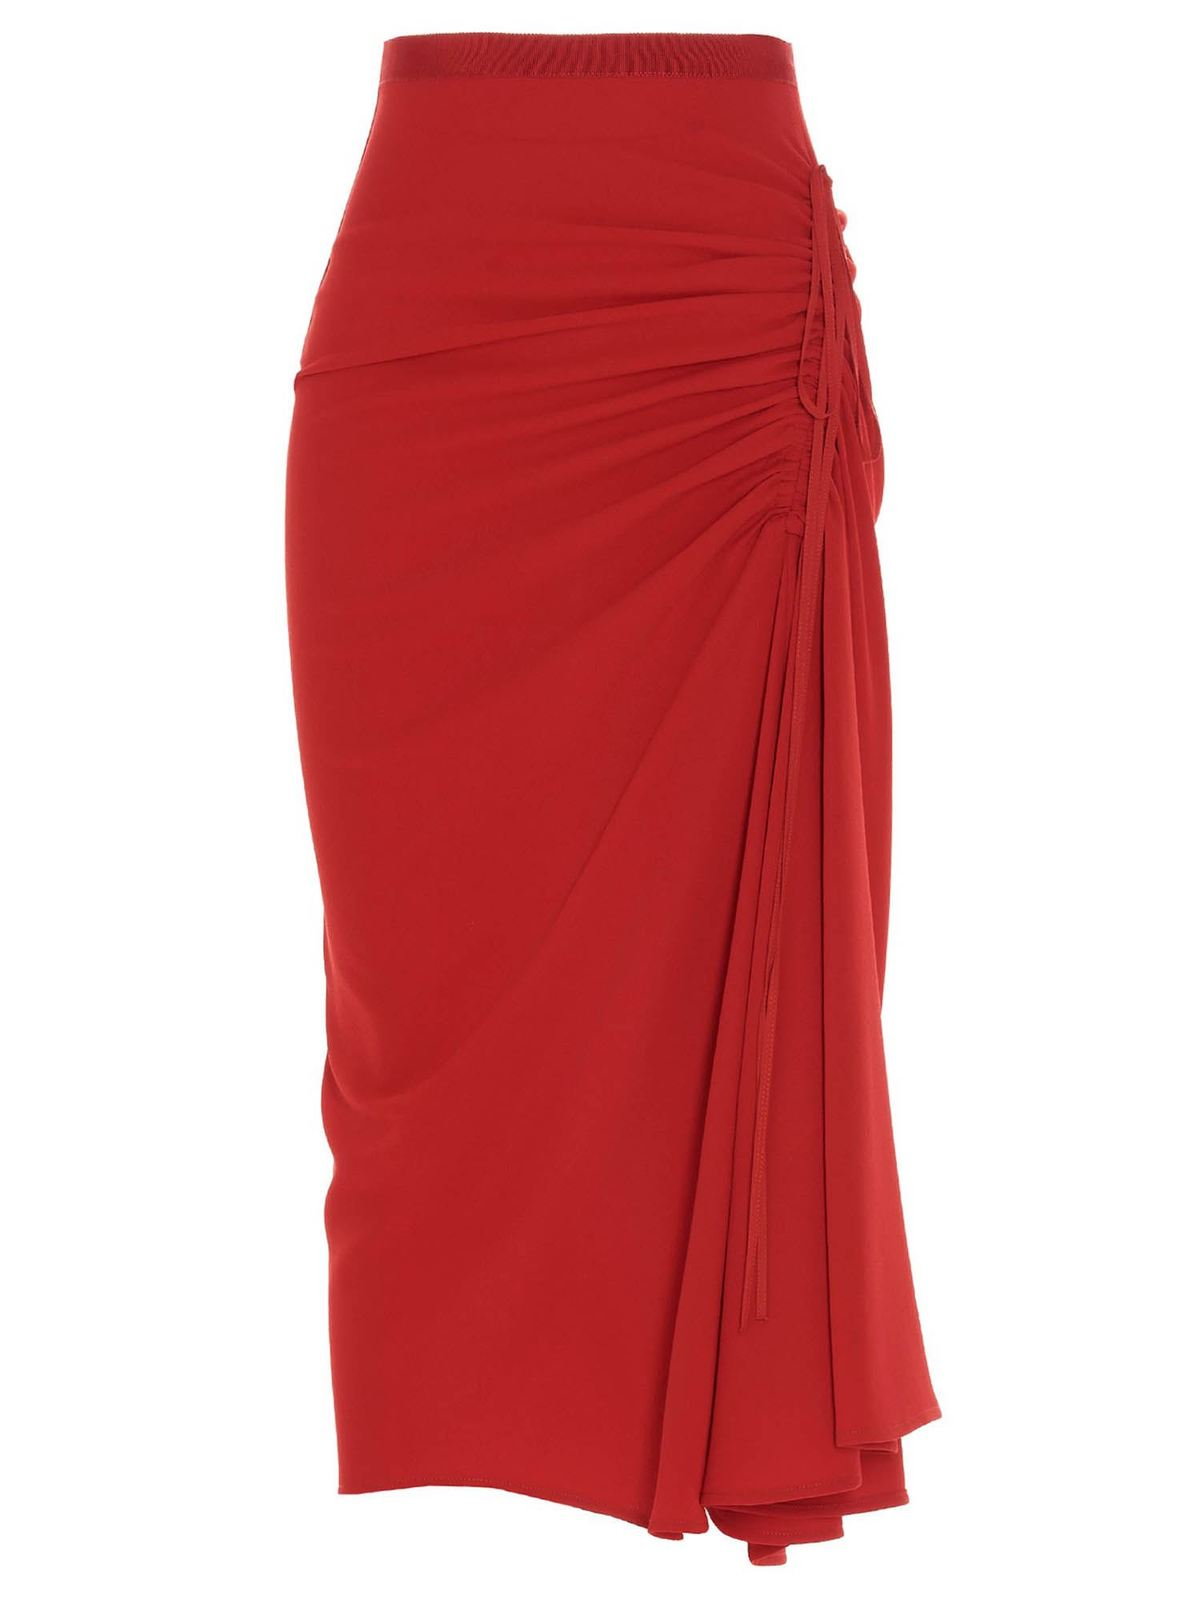 N°21 DRAWSTRING PENCIL SKIRT IN RED